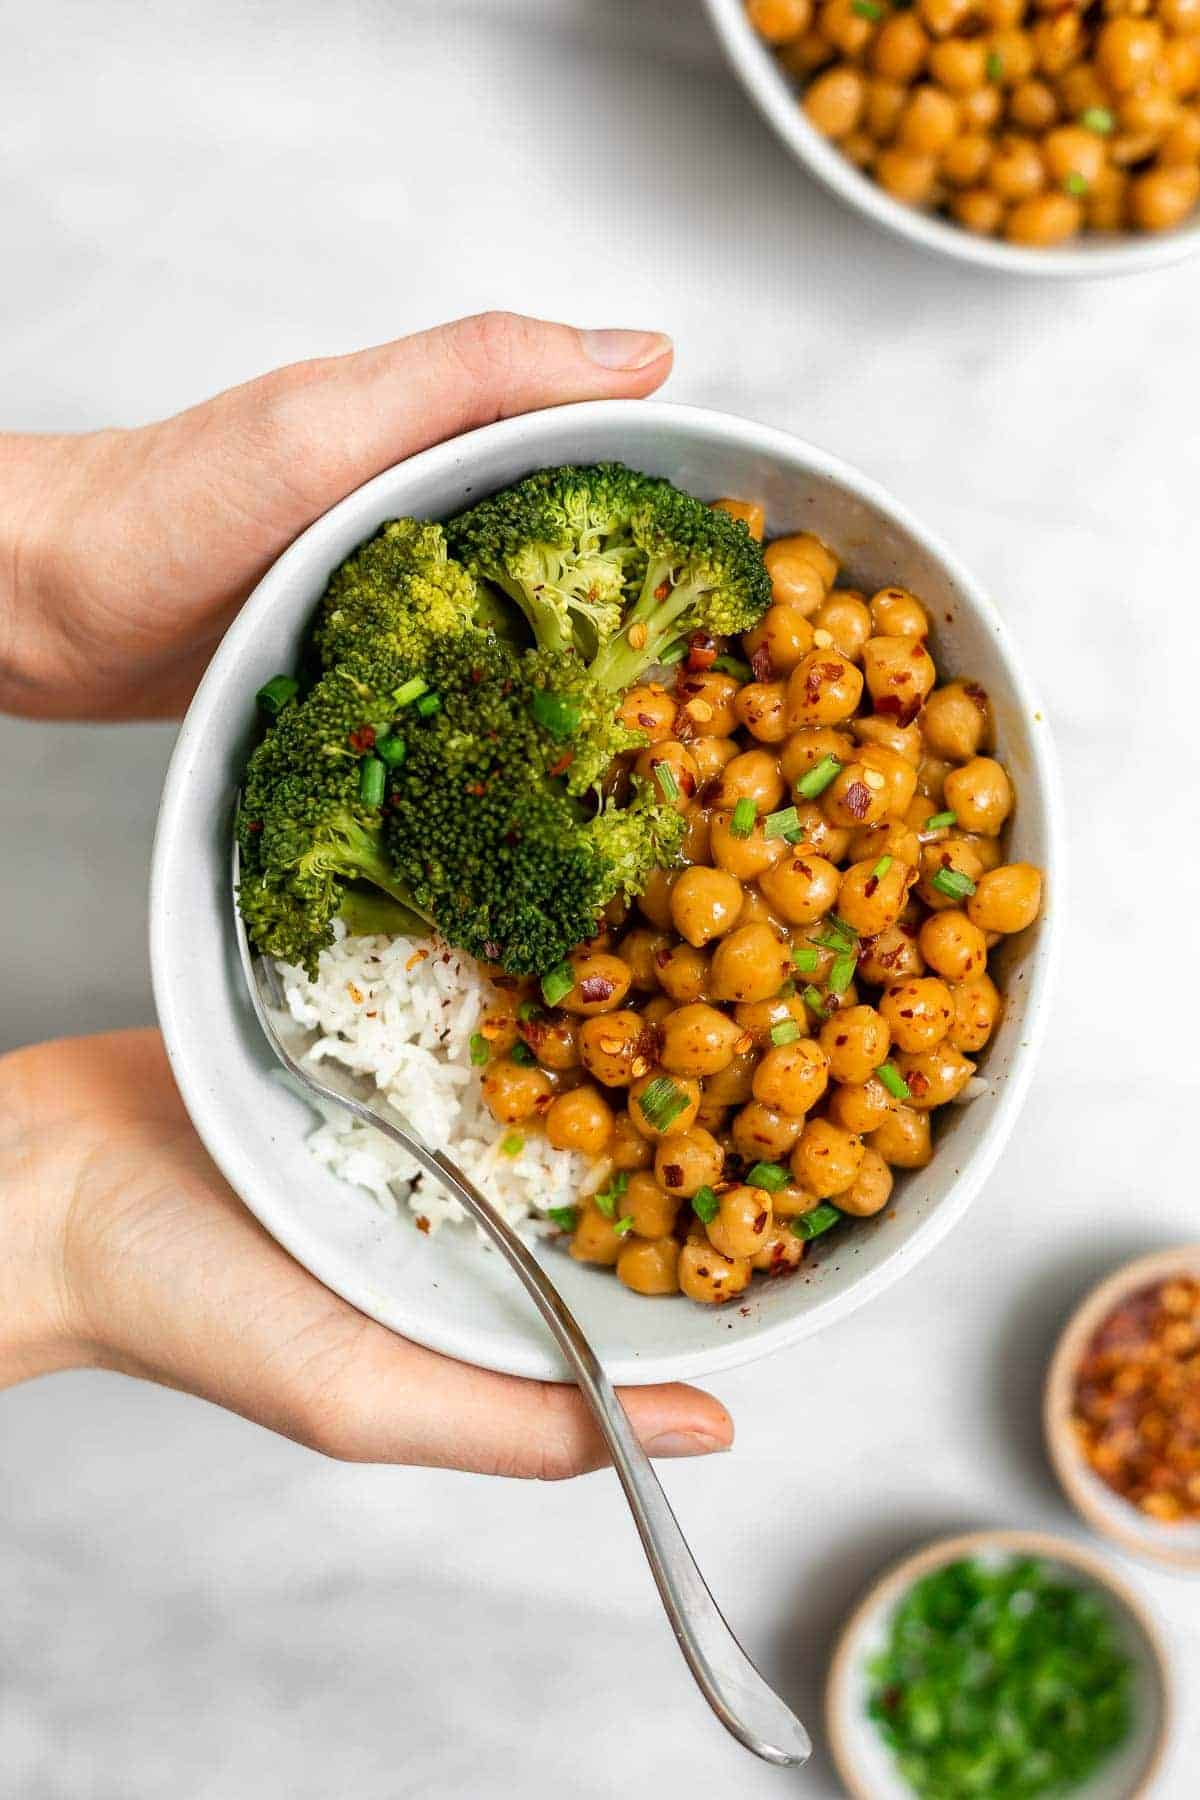 White rice with orange chickpeas and hands holding the bowl.